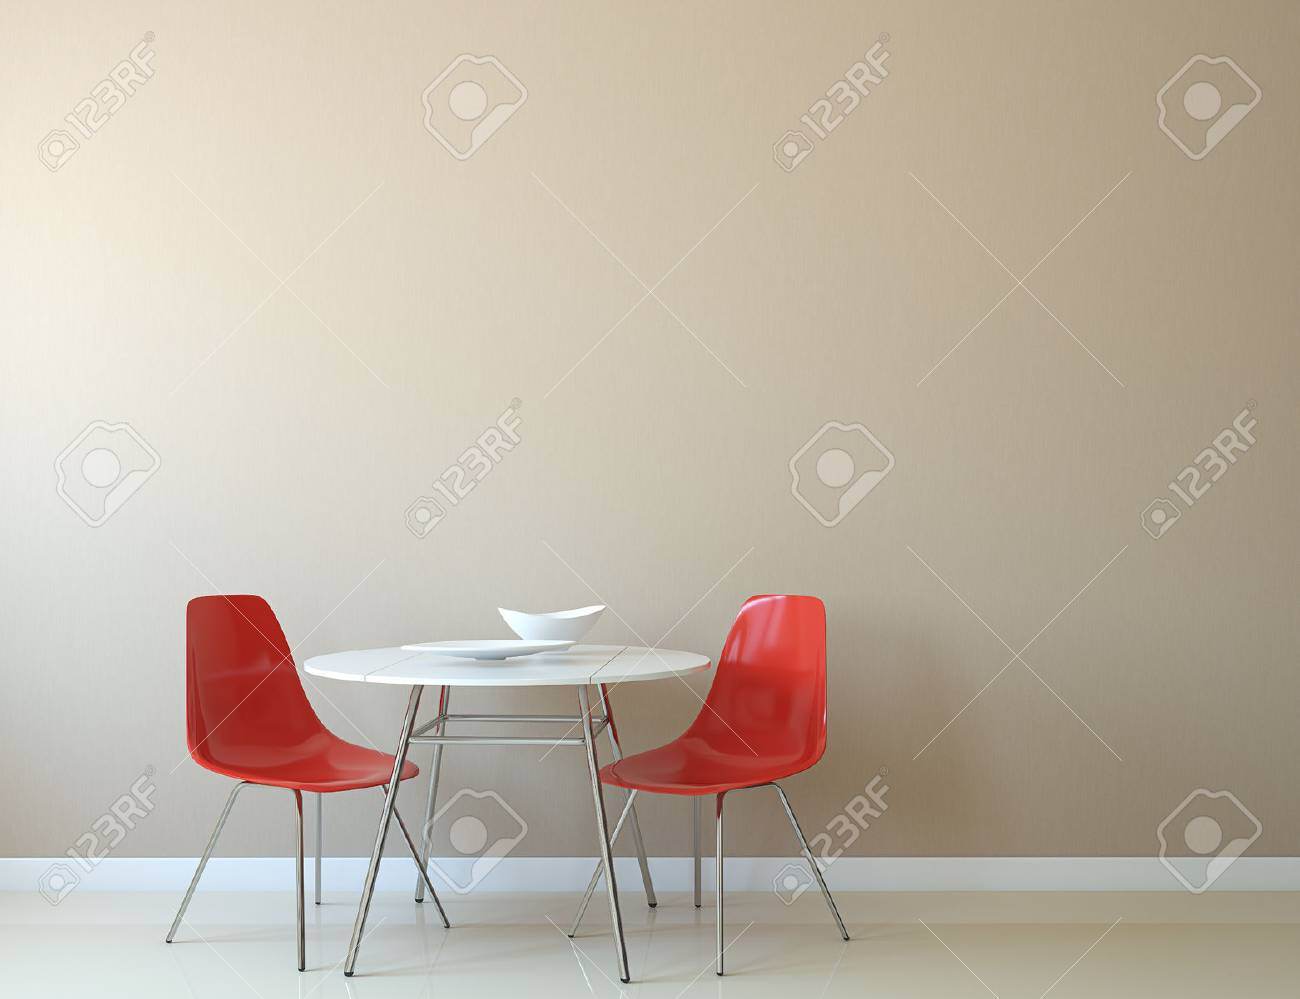 Kitchen Interior With Table And Two Red Chairs Near Empty Beige ...